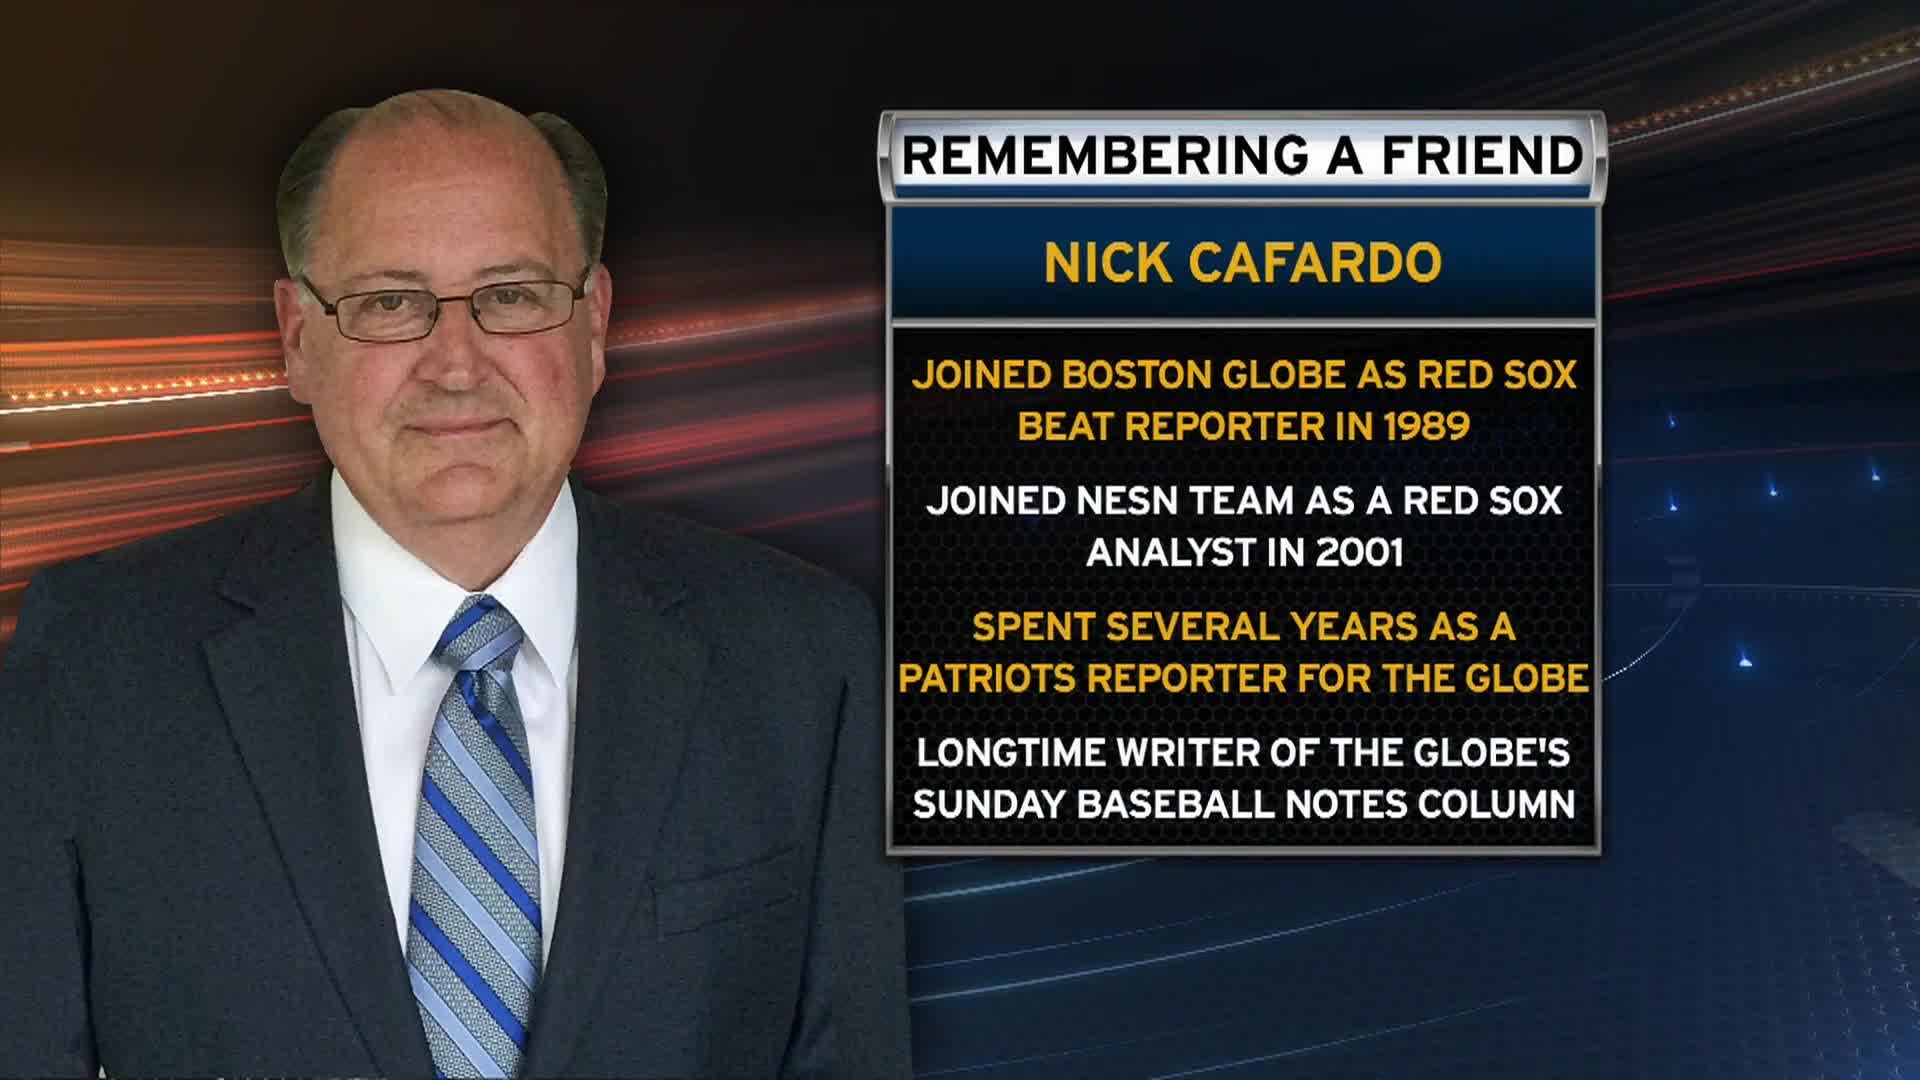 In Nick Cafardo, we lost a great teammate who was much loved